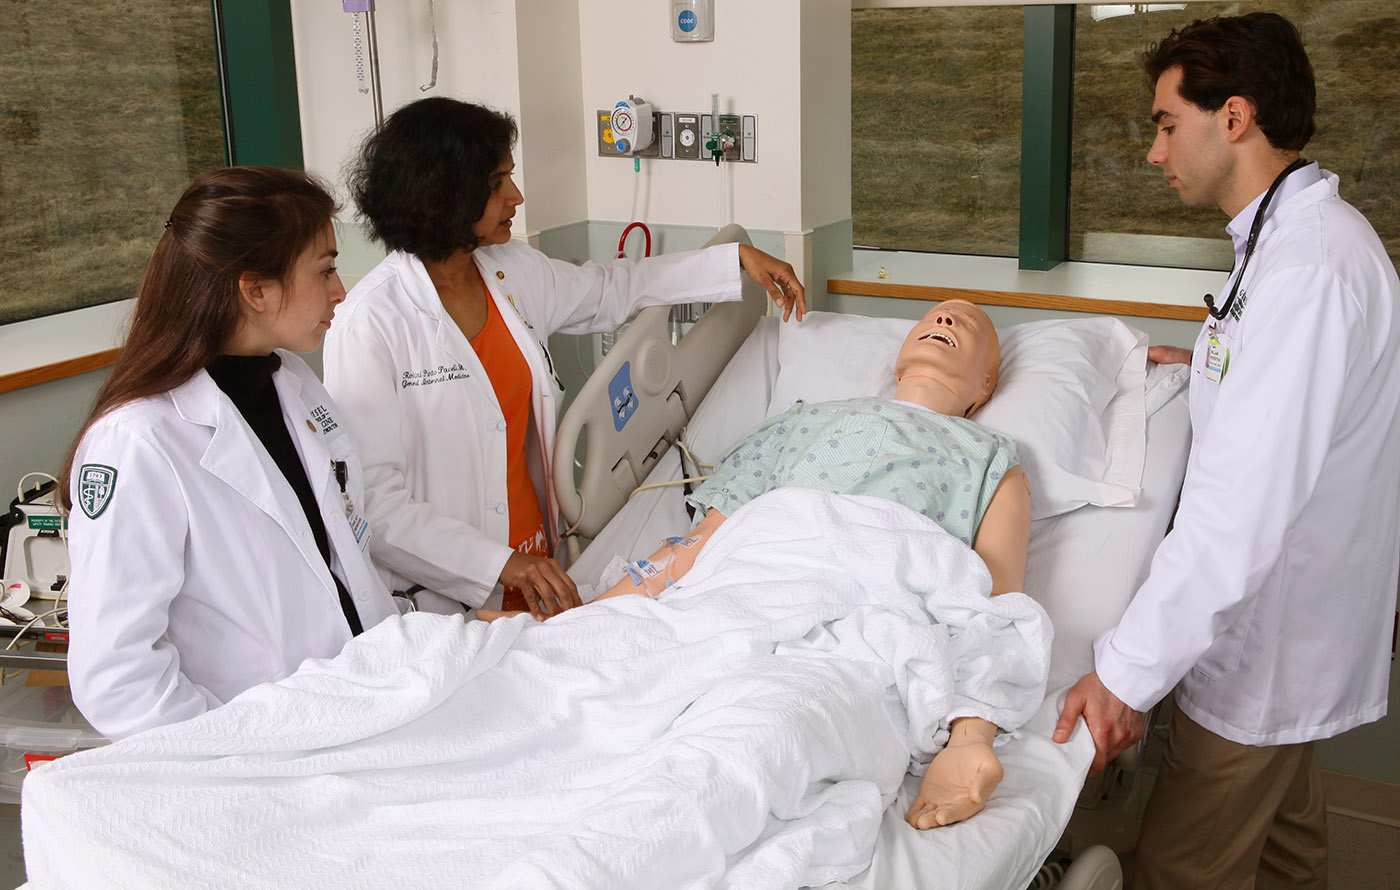 Medical students work with Dr. Roshini Pinto-Powell at the Dartmouth-Hitchcock Simulation Center